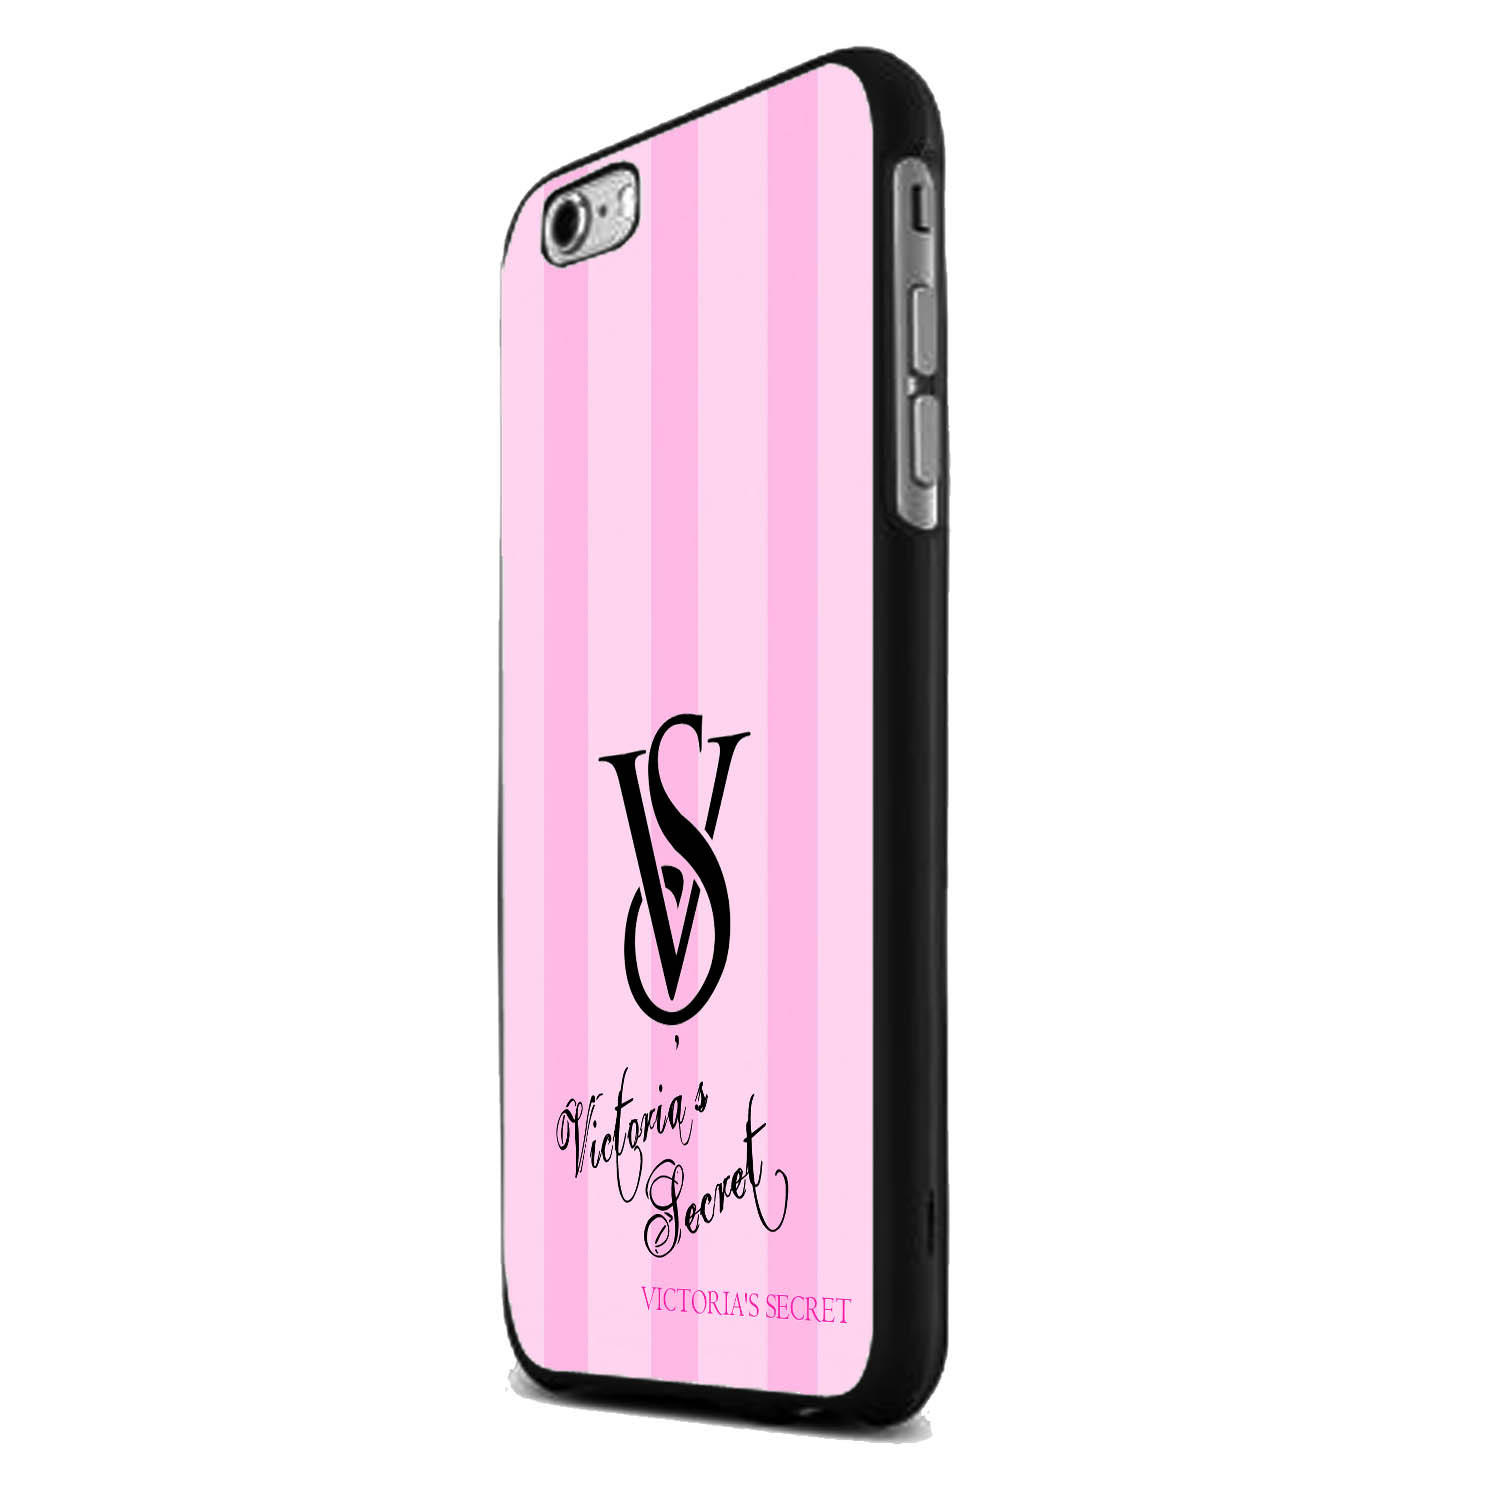 64845d3ffaffa Victoria's Secret iPhone 6 Case